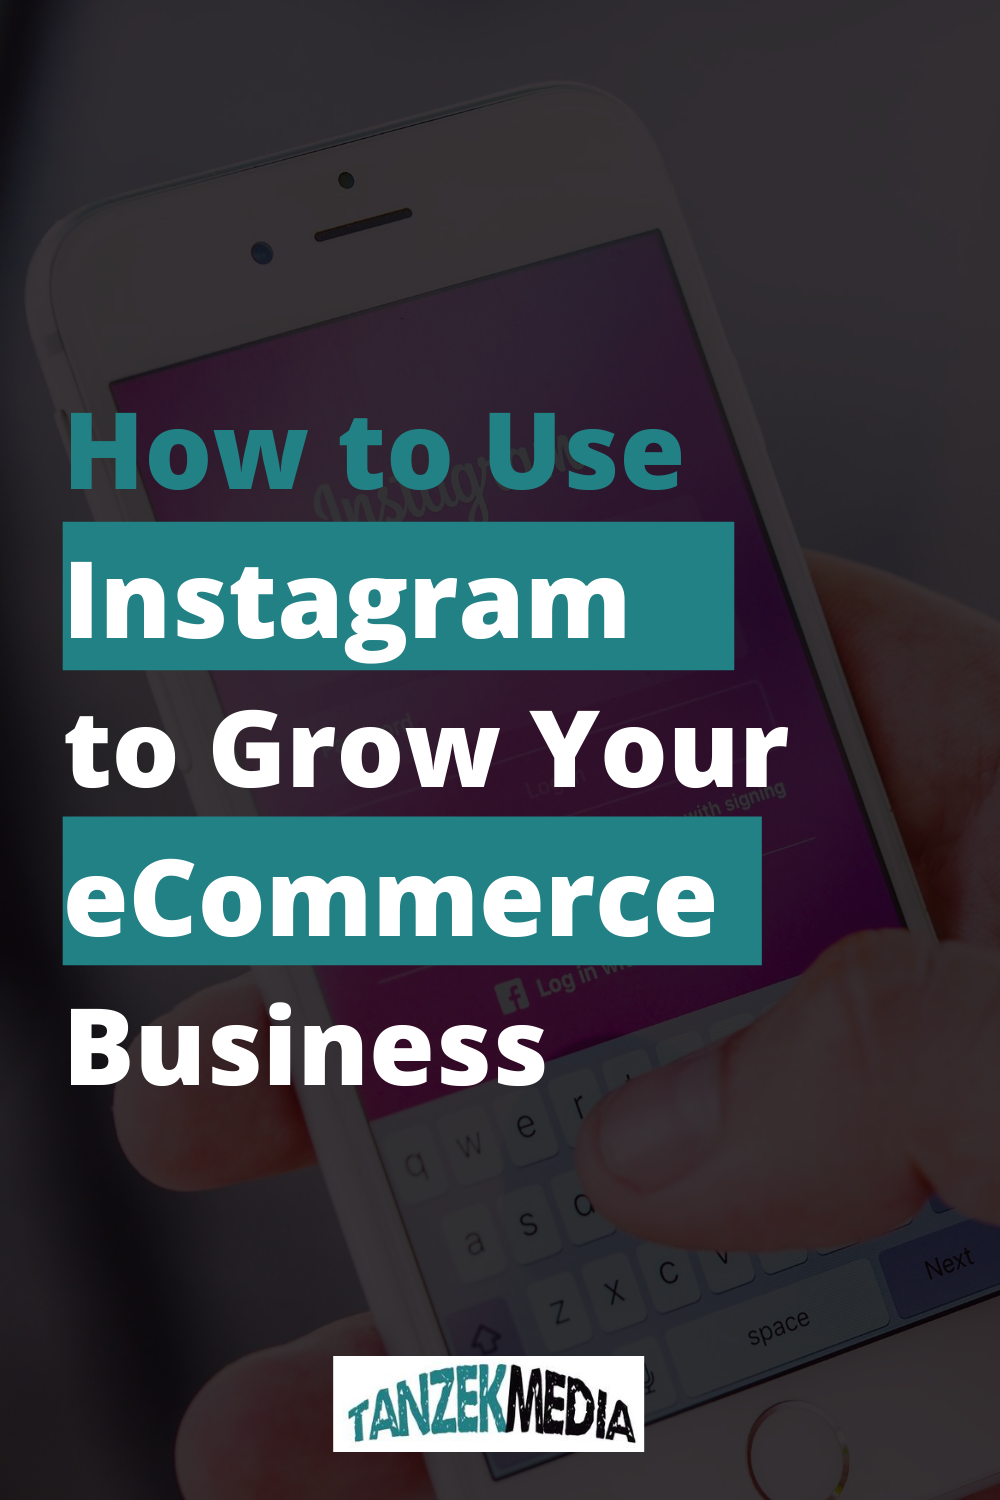 Using Instagram to take your eCommerce business to new heights